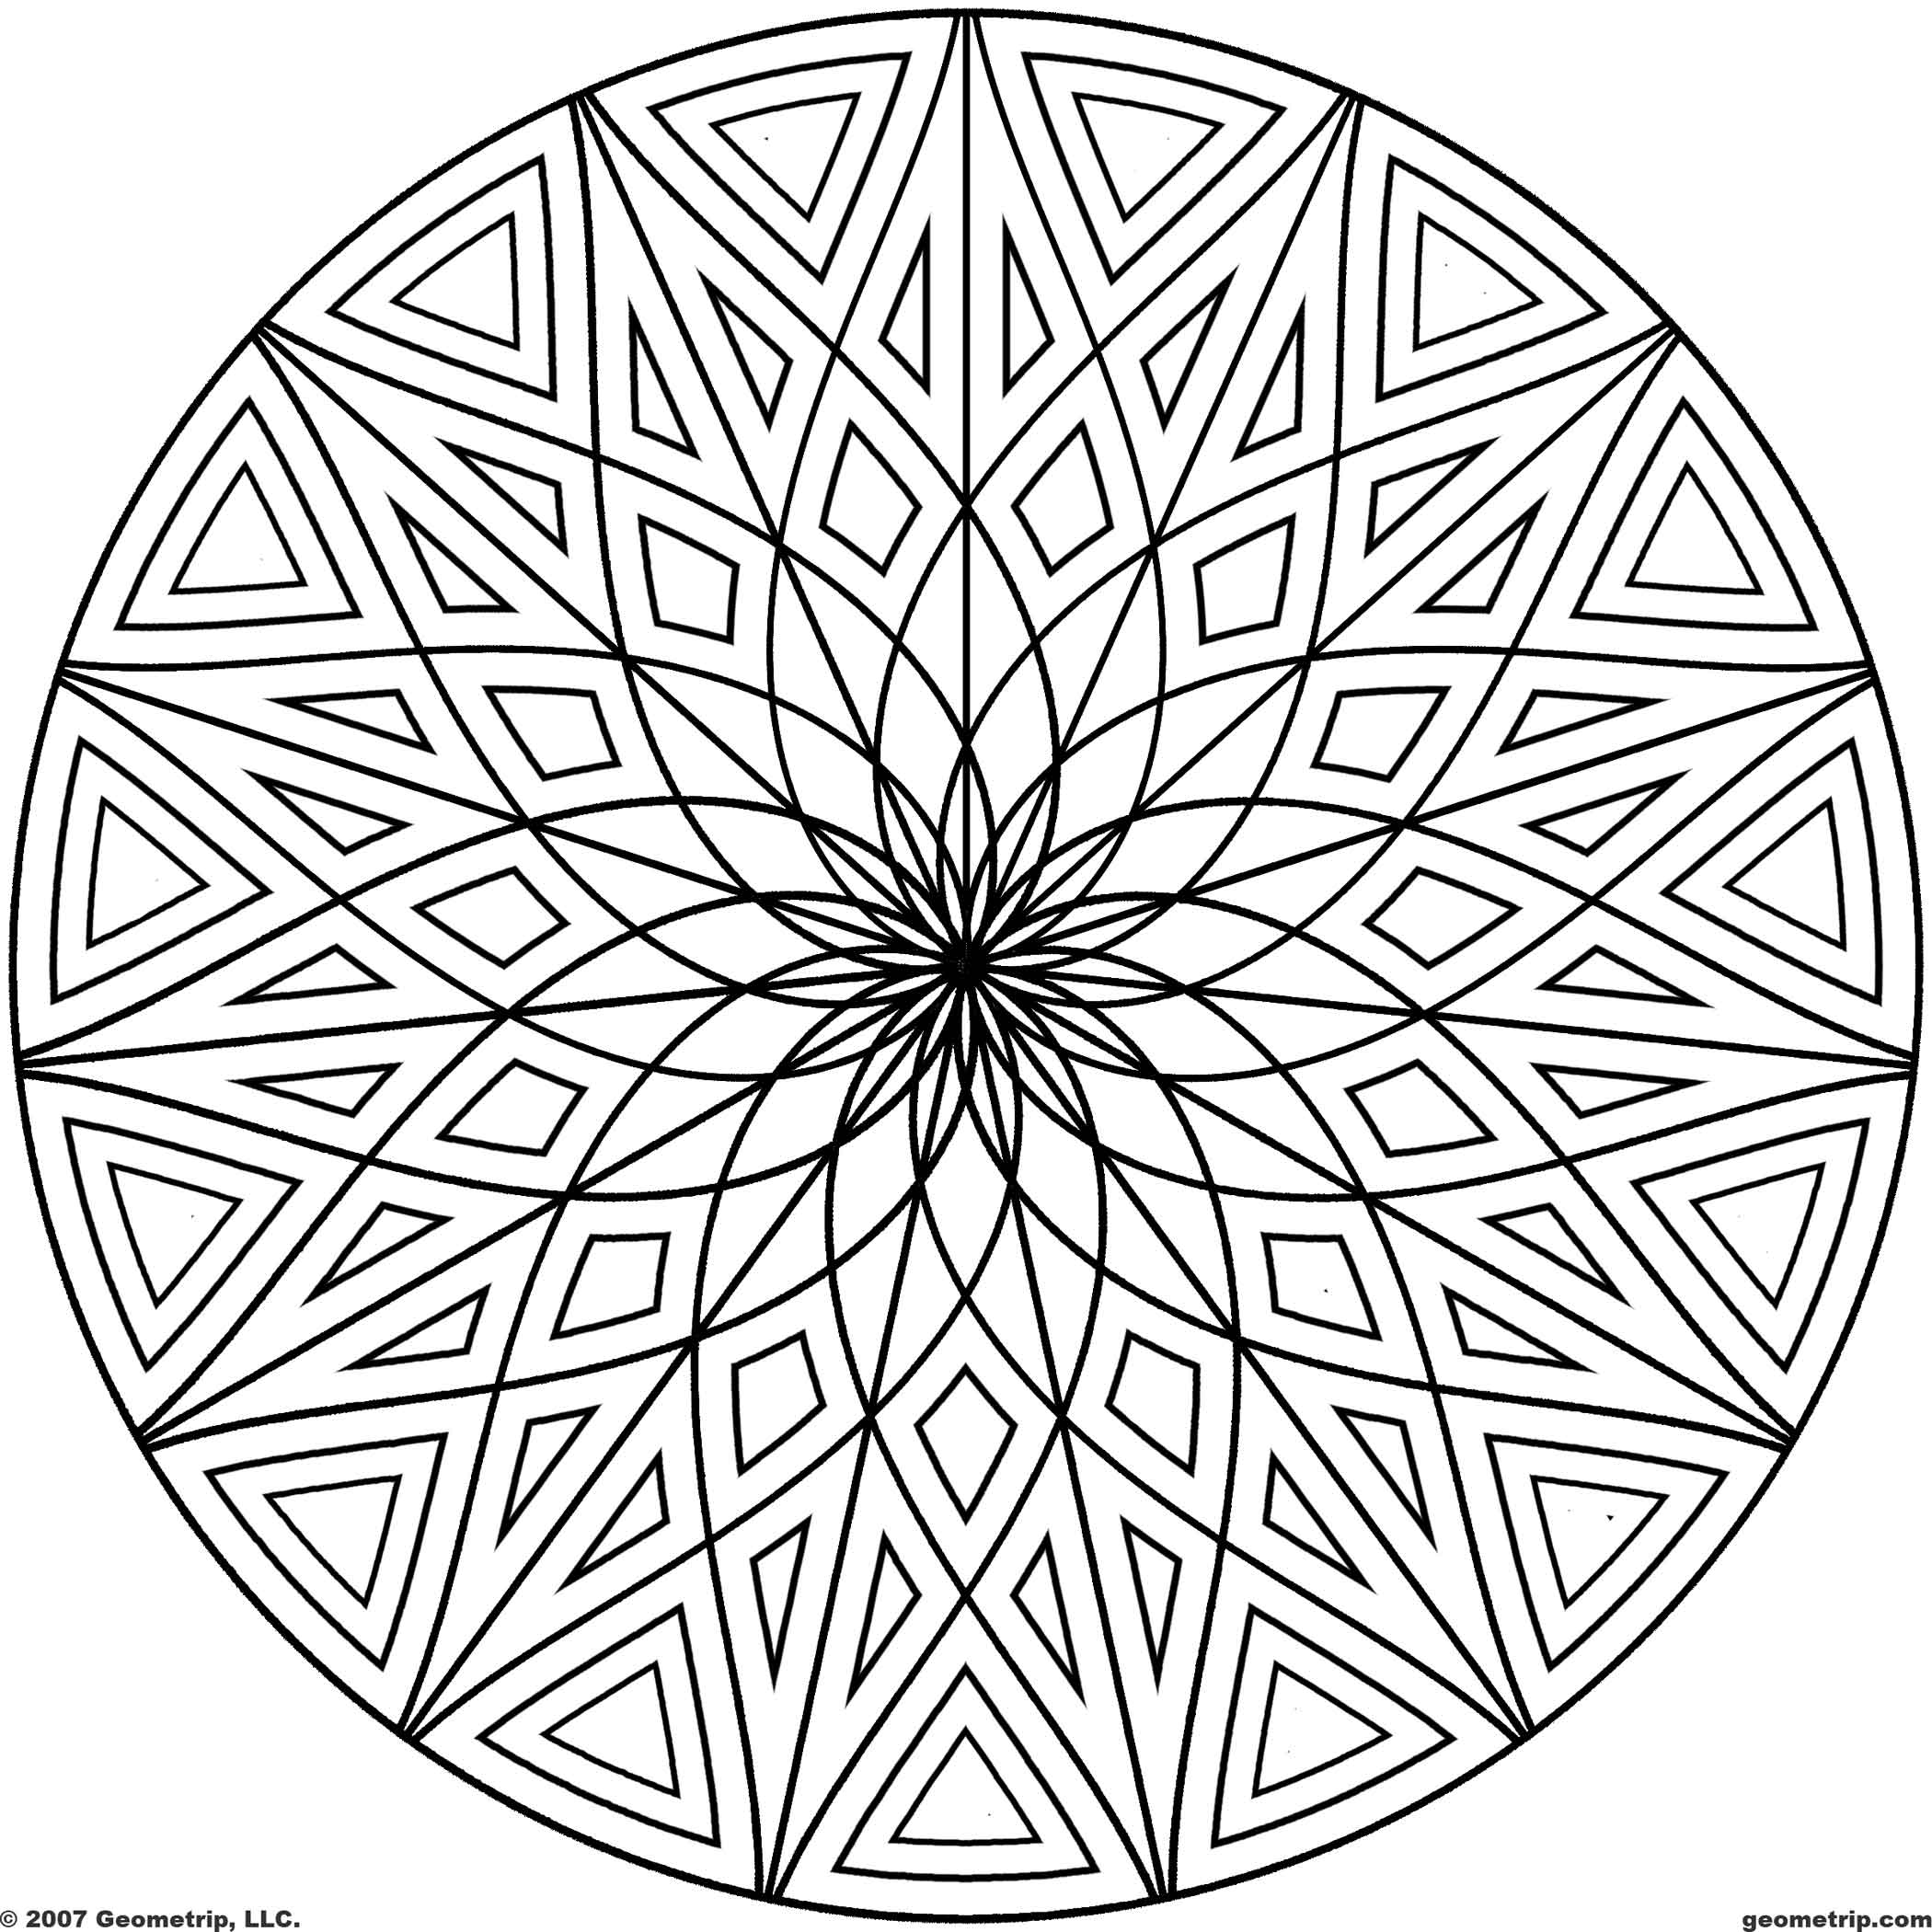 coloring pages of cool designs cool design coloring pages getcoloringpagescom designs of coloring cool pages